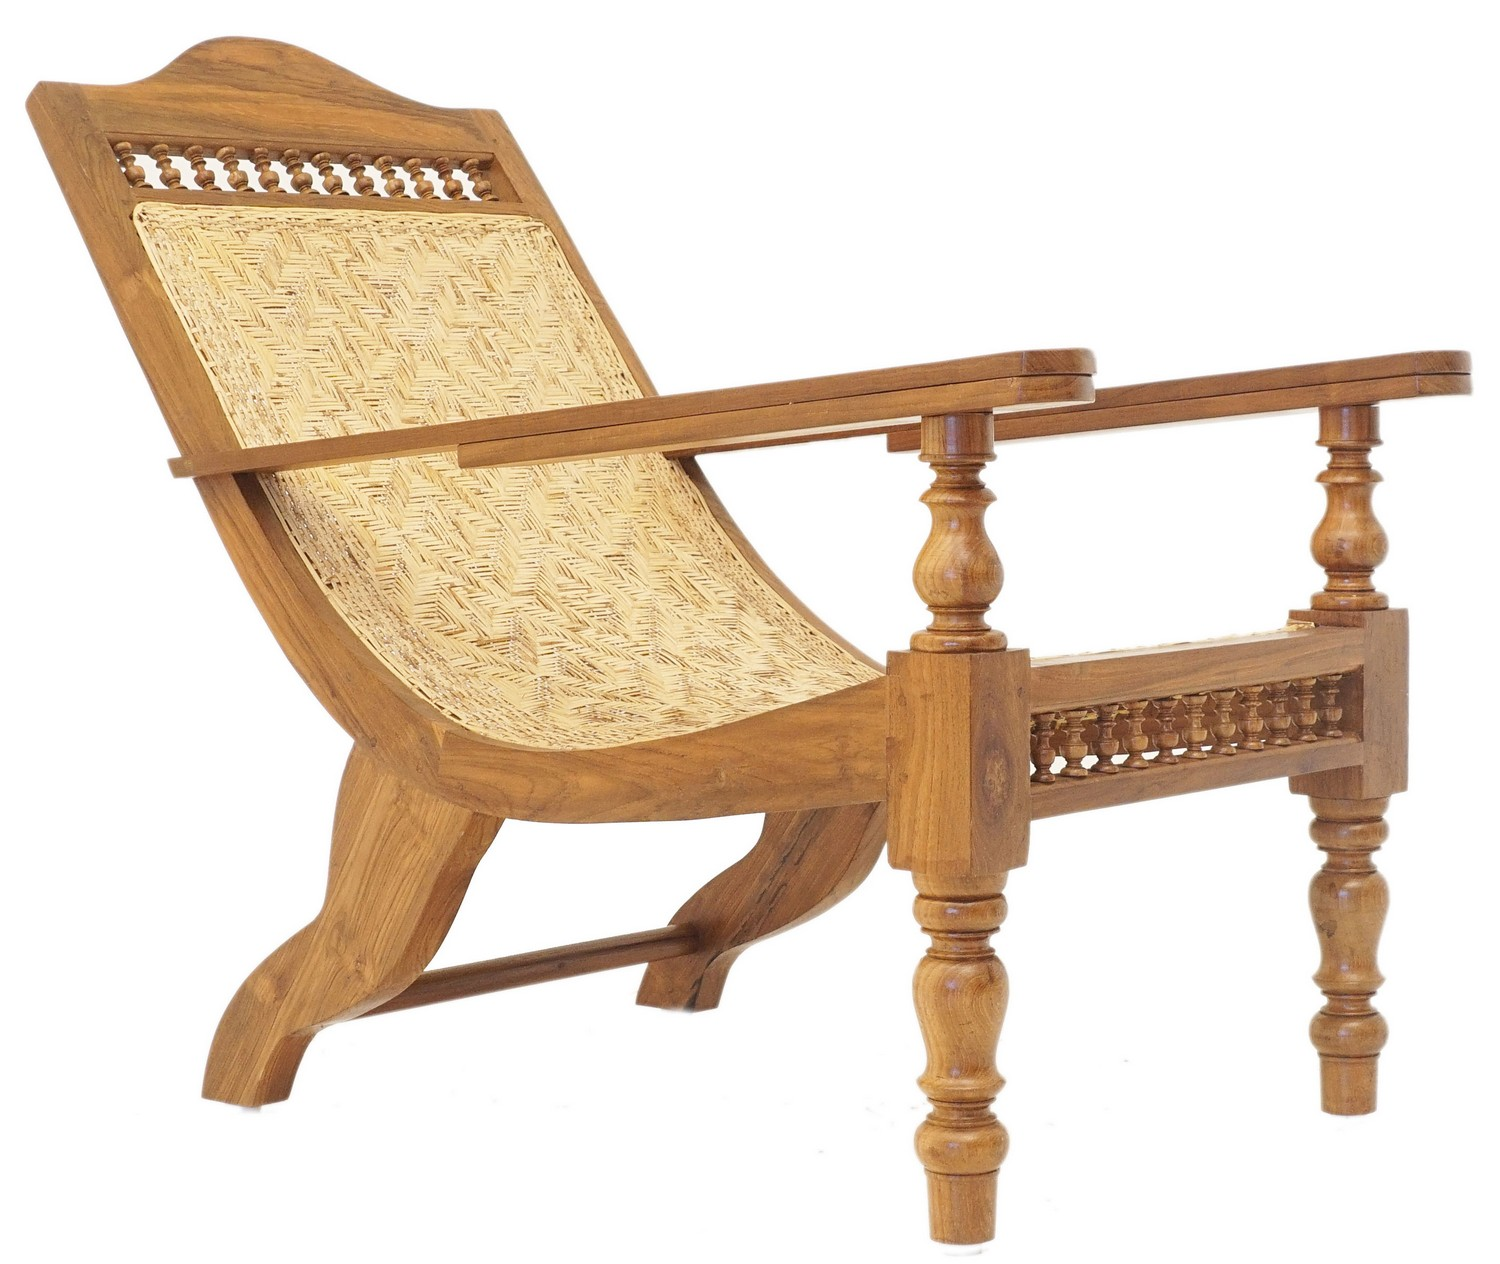 Antique Furniture Online Vintage Furniture Shop India Antiques